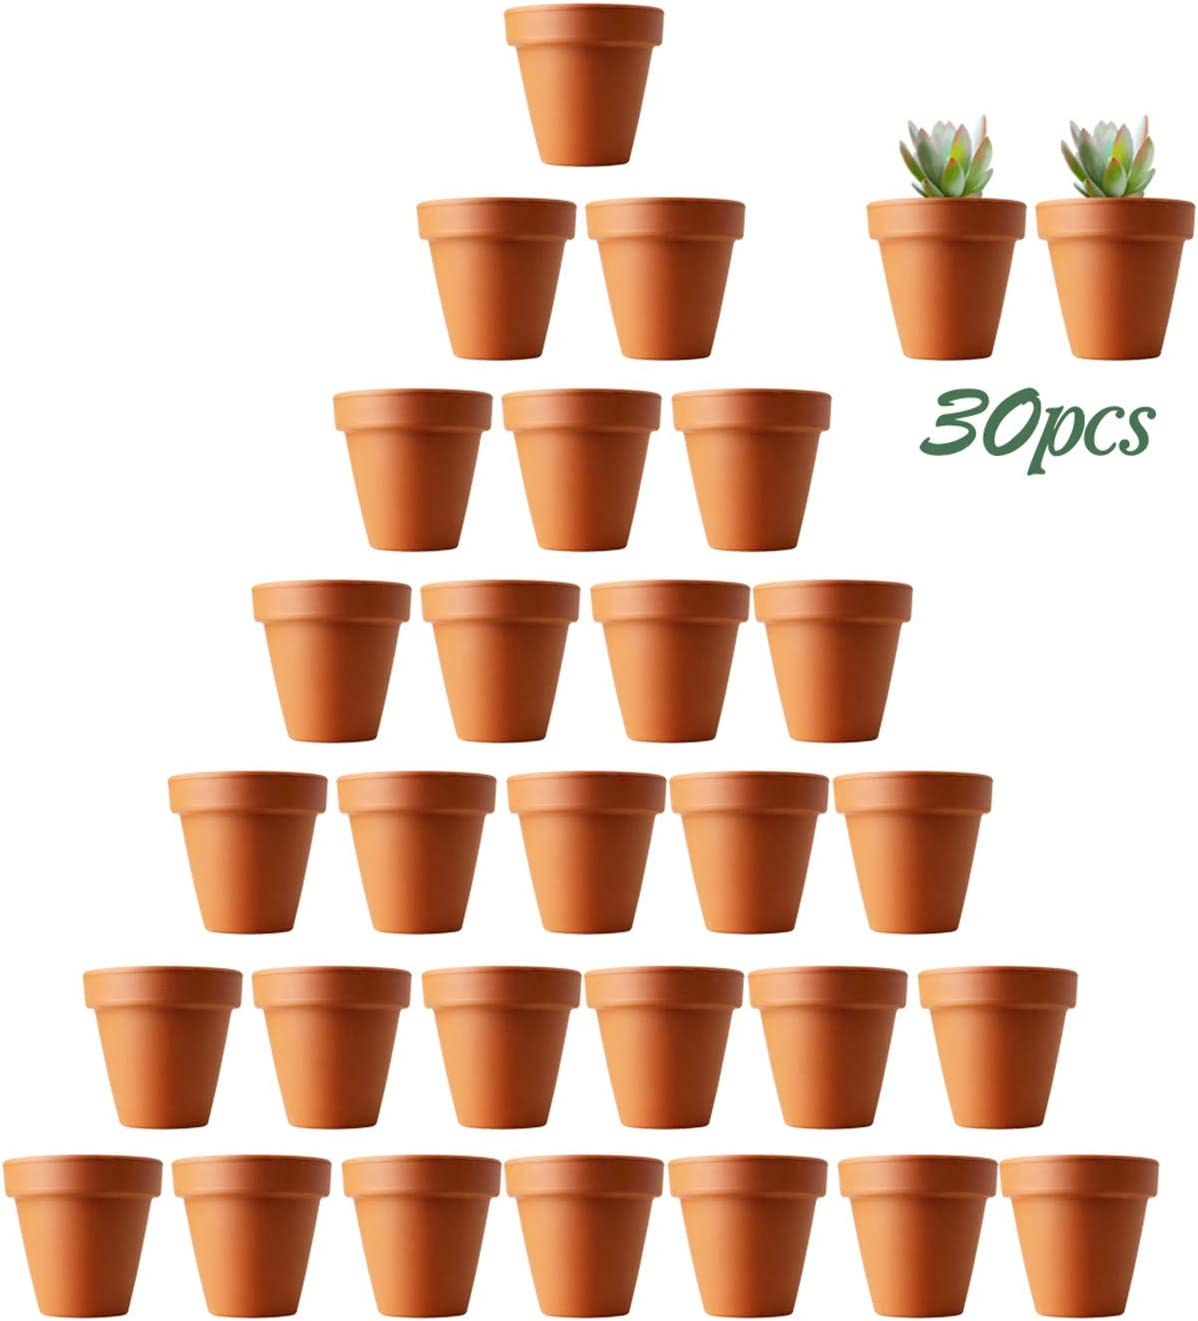 Mini Clay Pots, 30 PCS Small Mini Terracotta Pot Clay Ceramic Pottery Planter, Cactus Flower Terracotta Pots, DIY Home Office Desktop Windowsill Ornament Decoration